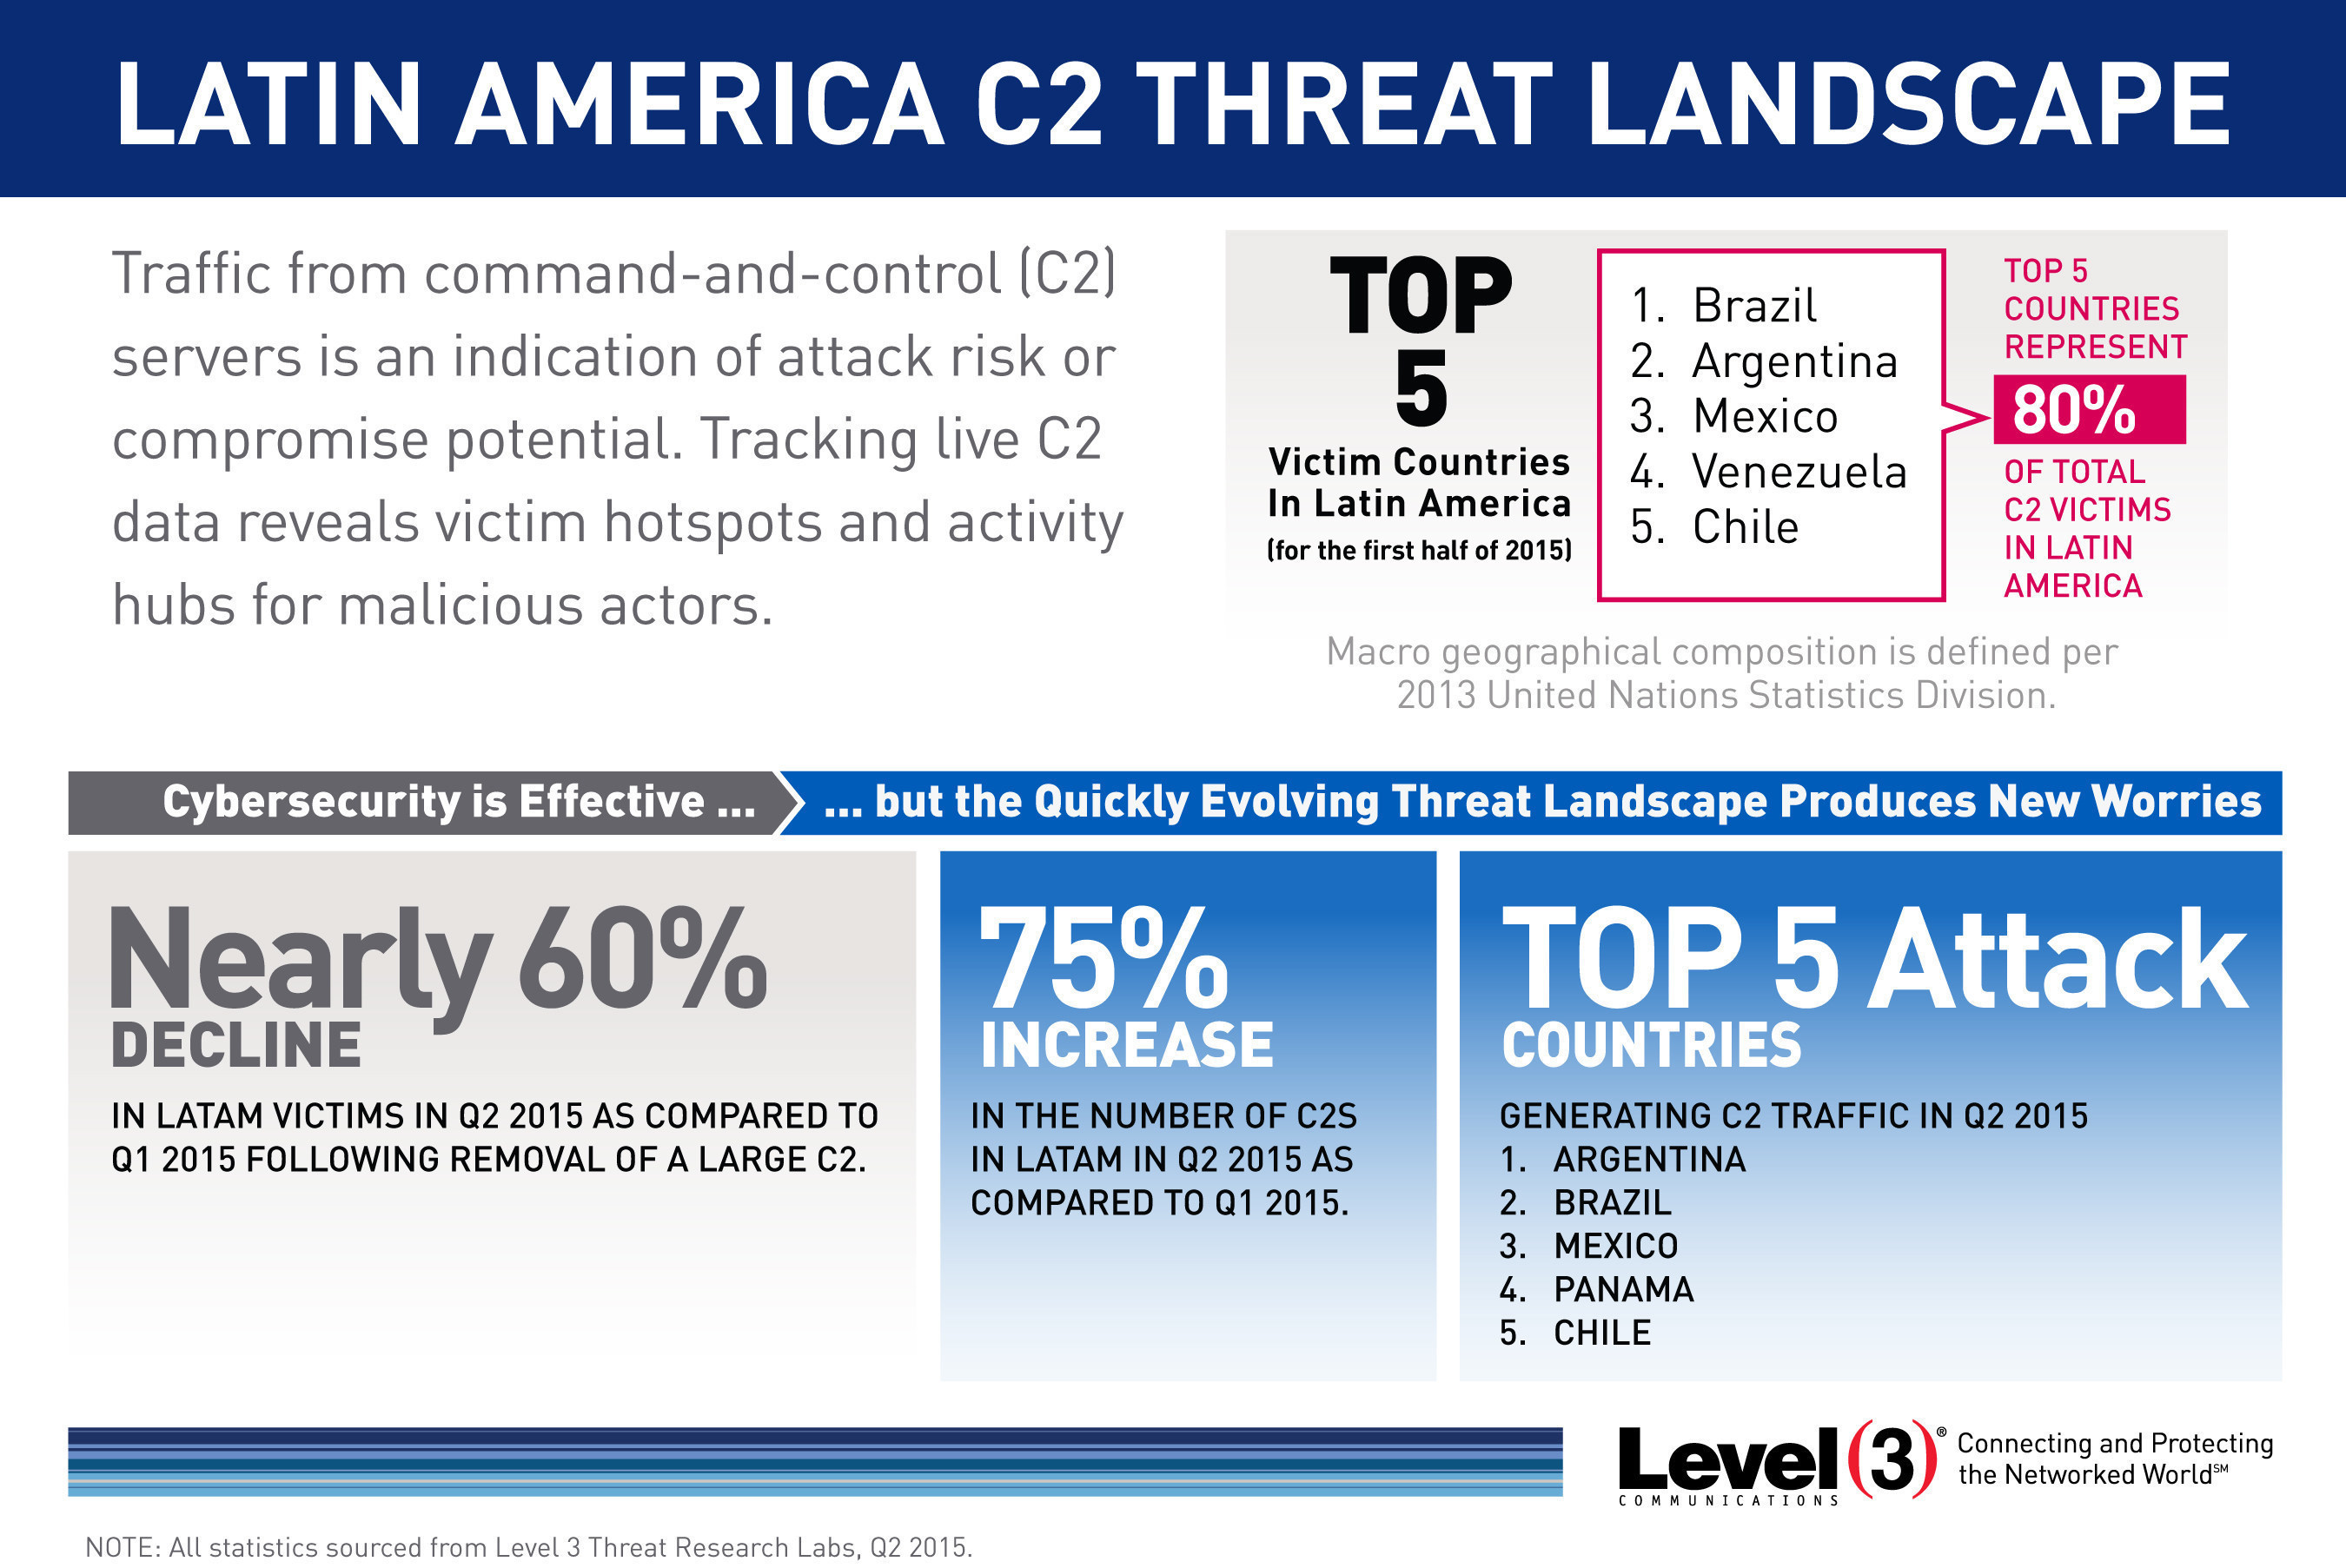 Level 3 Threat Research Labs tracked traffic from command-and-control servers in Latin America to identify ...